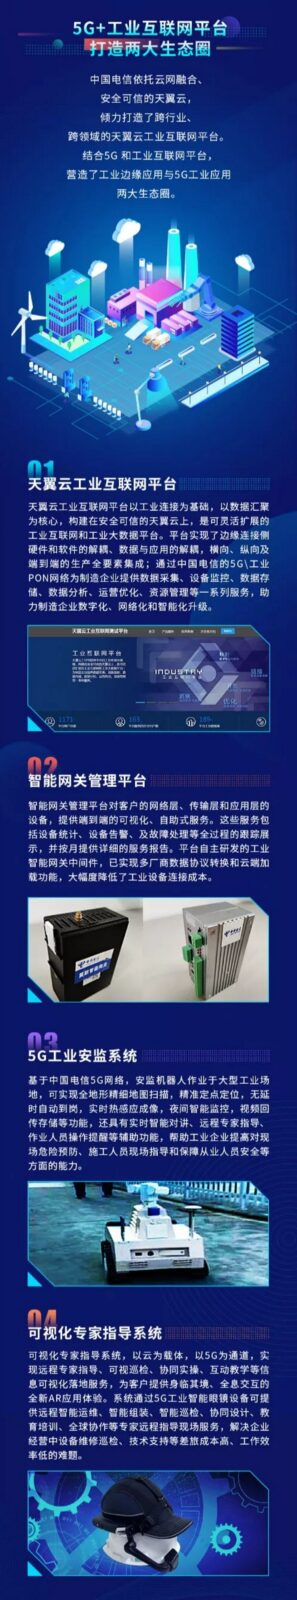 Softfoundry FacePro Xpert System participates in China Telecom 5G Innovation Cooperation Conference